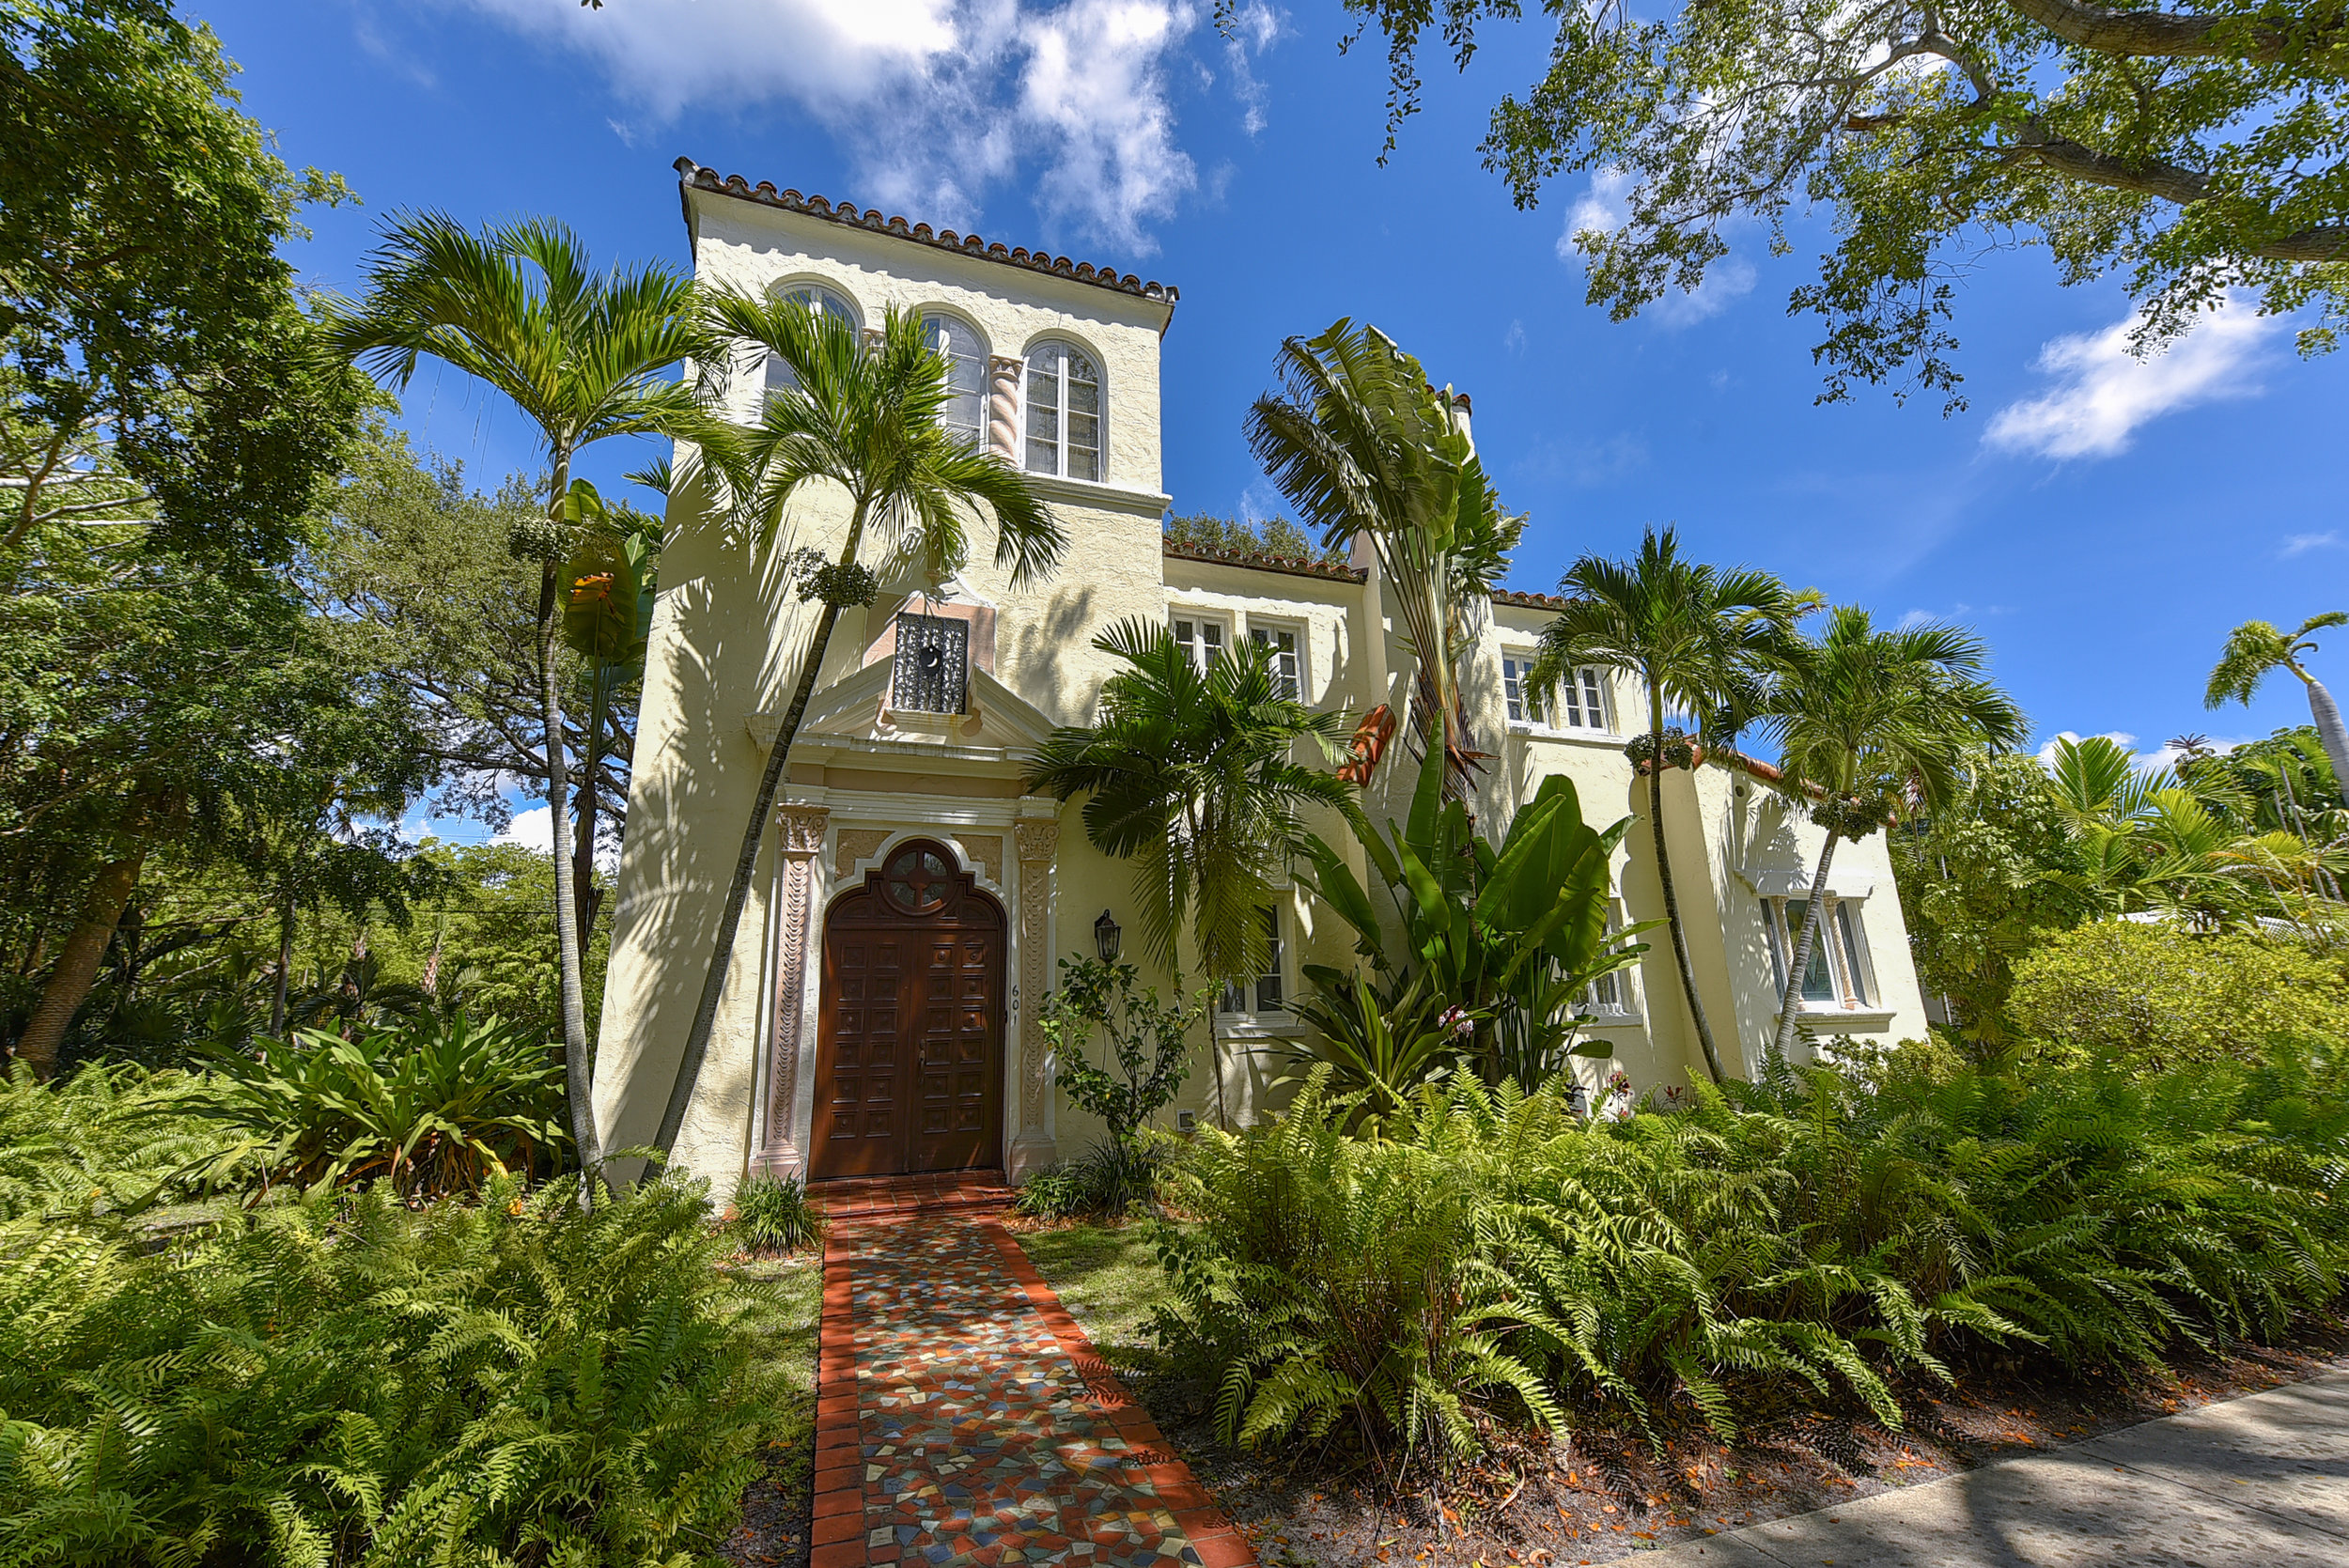 Florida's 2nd Woman Architect Who Built University of Miami's Campus Sells Home For $1 Million